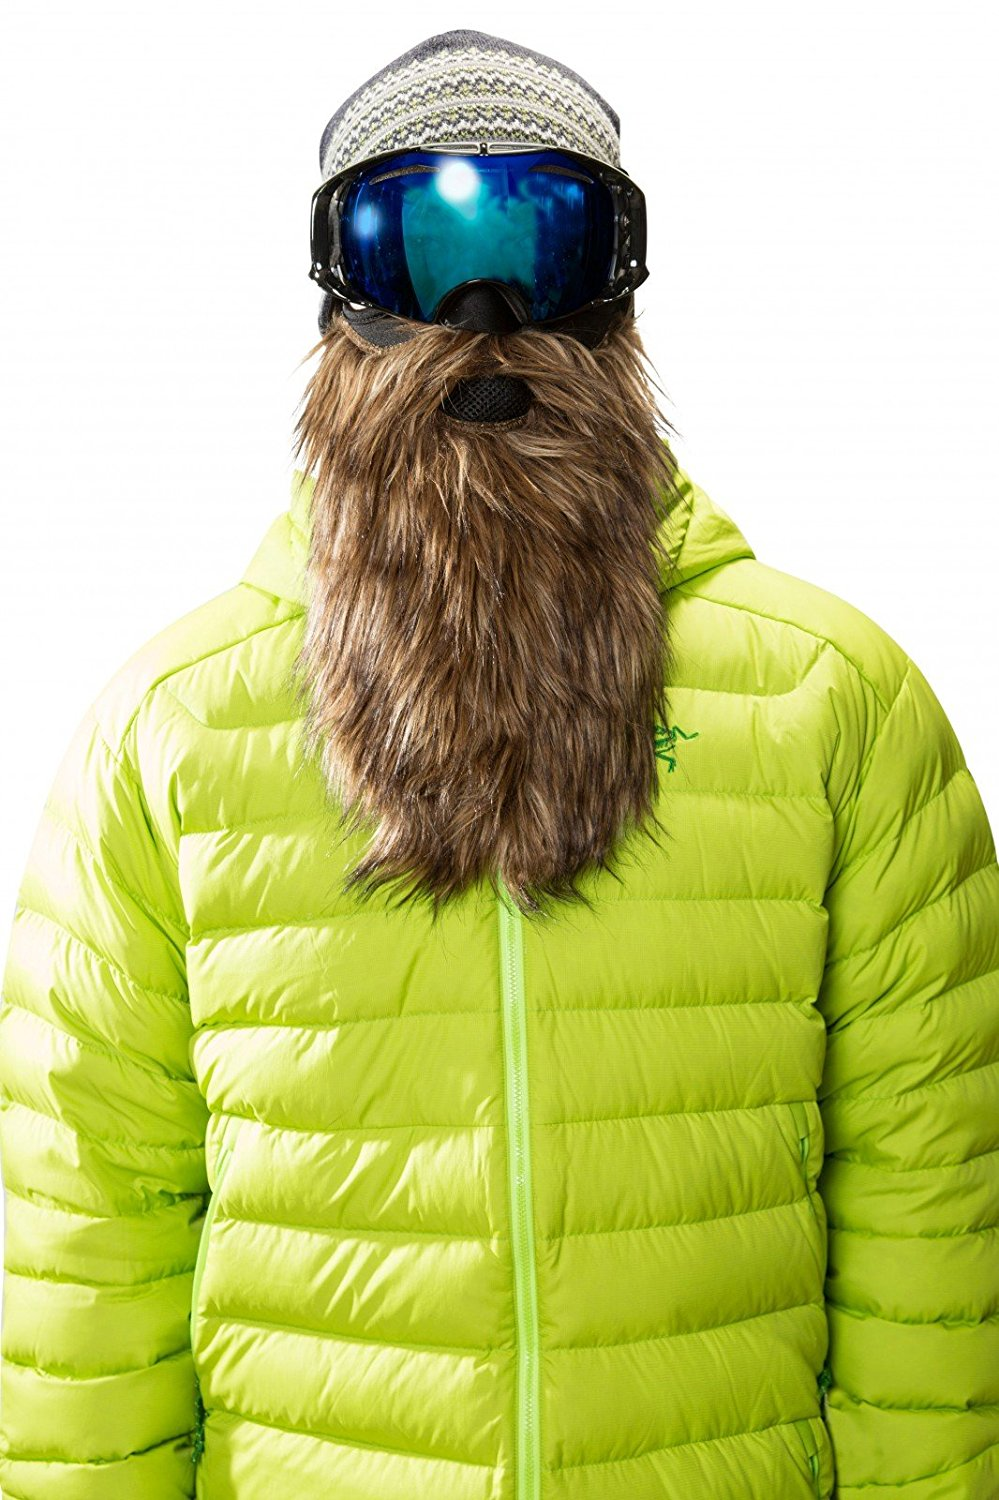 beardski-barbe-masque-de-ski-bonnet-1